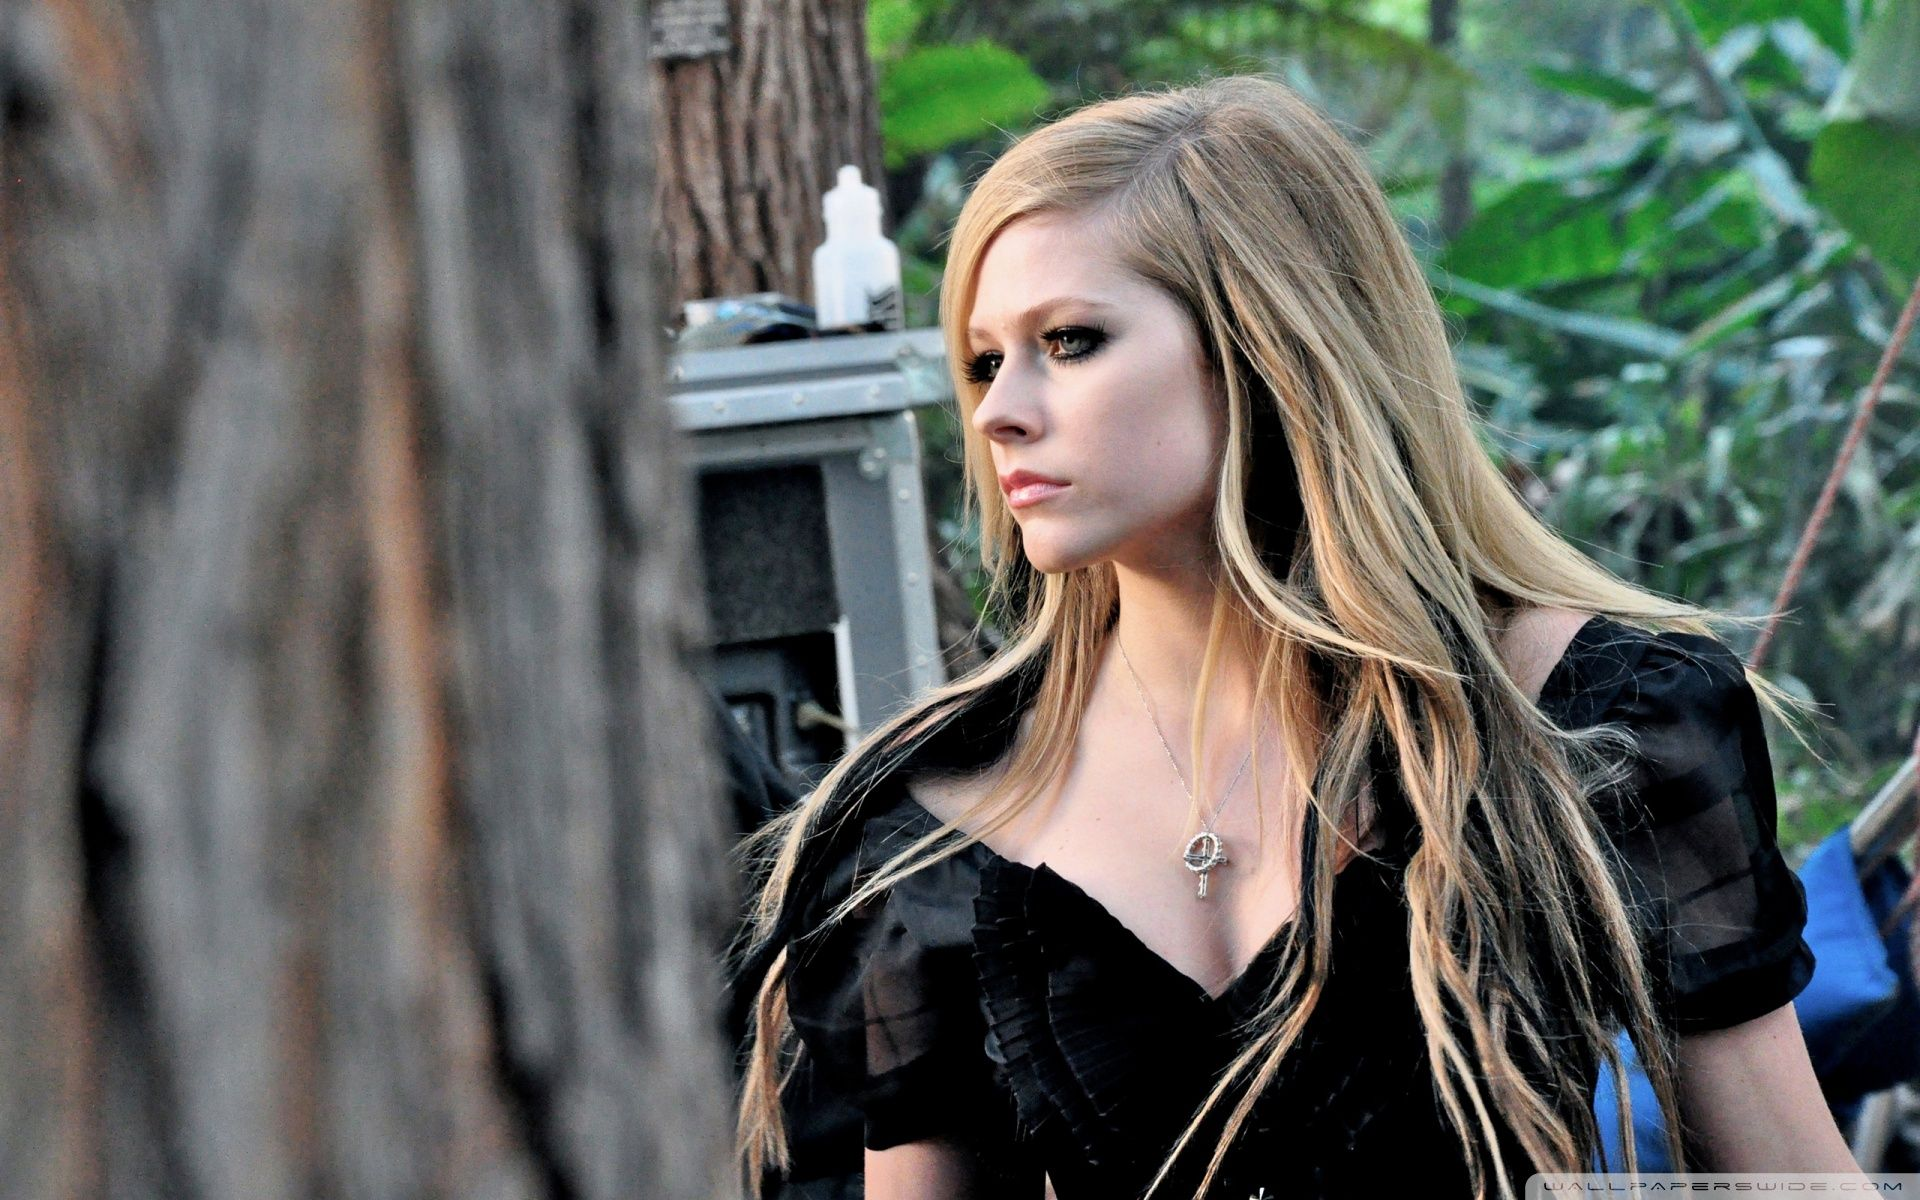 best images about Avril Lavigne on Pinterest The best damn